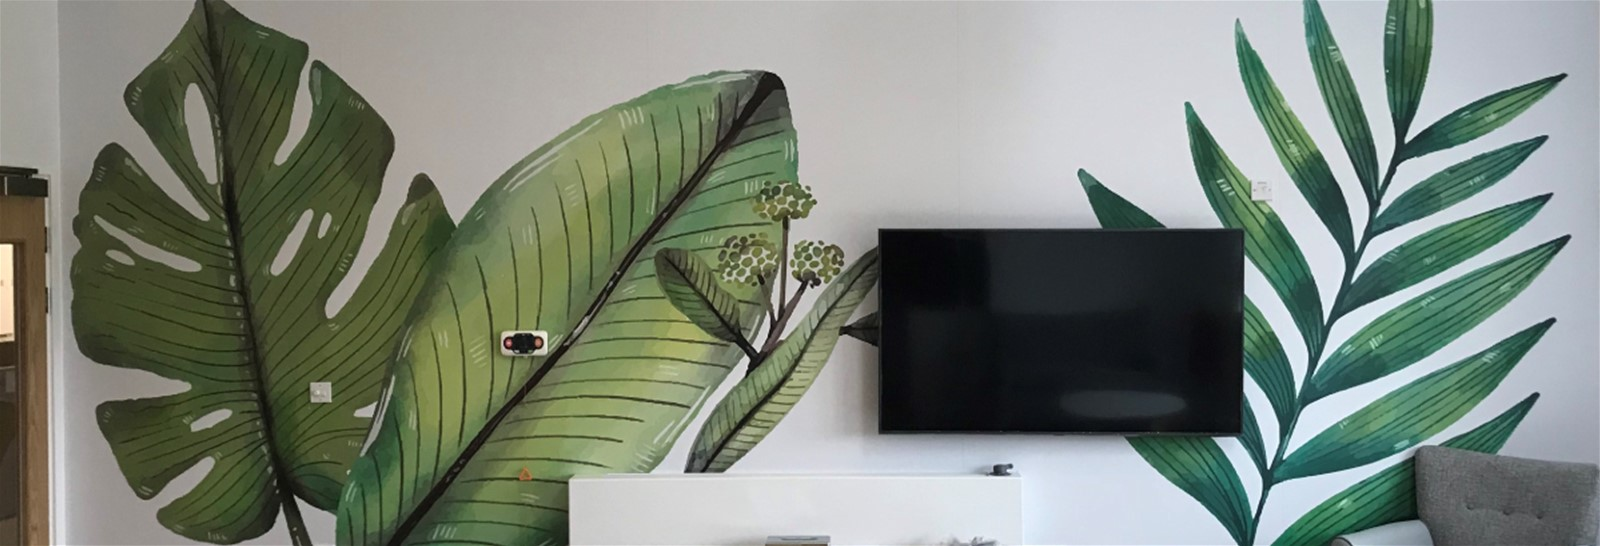 Wall graphics in company breakout area